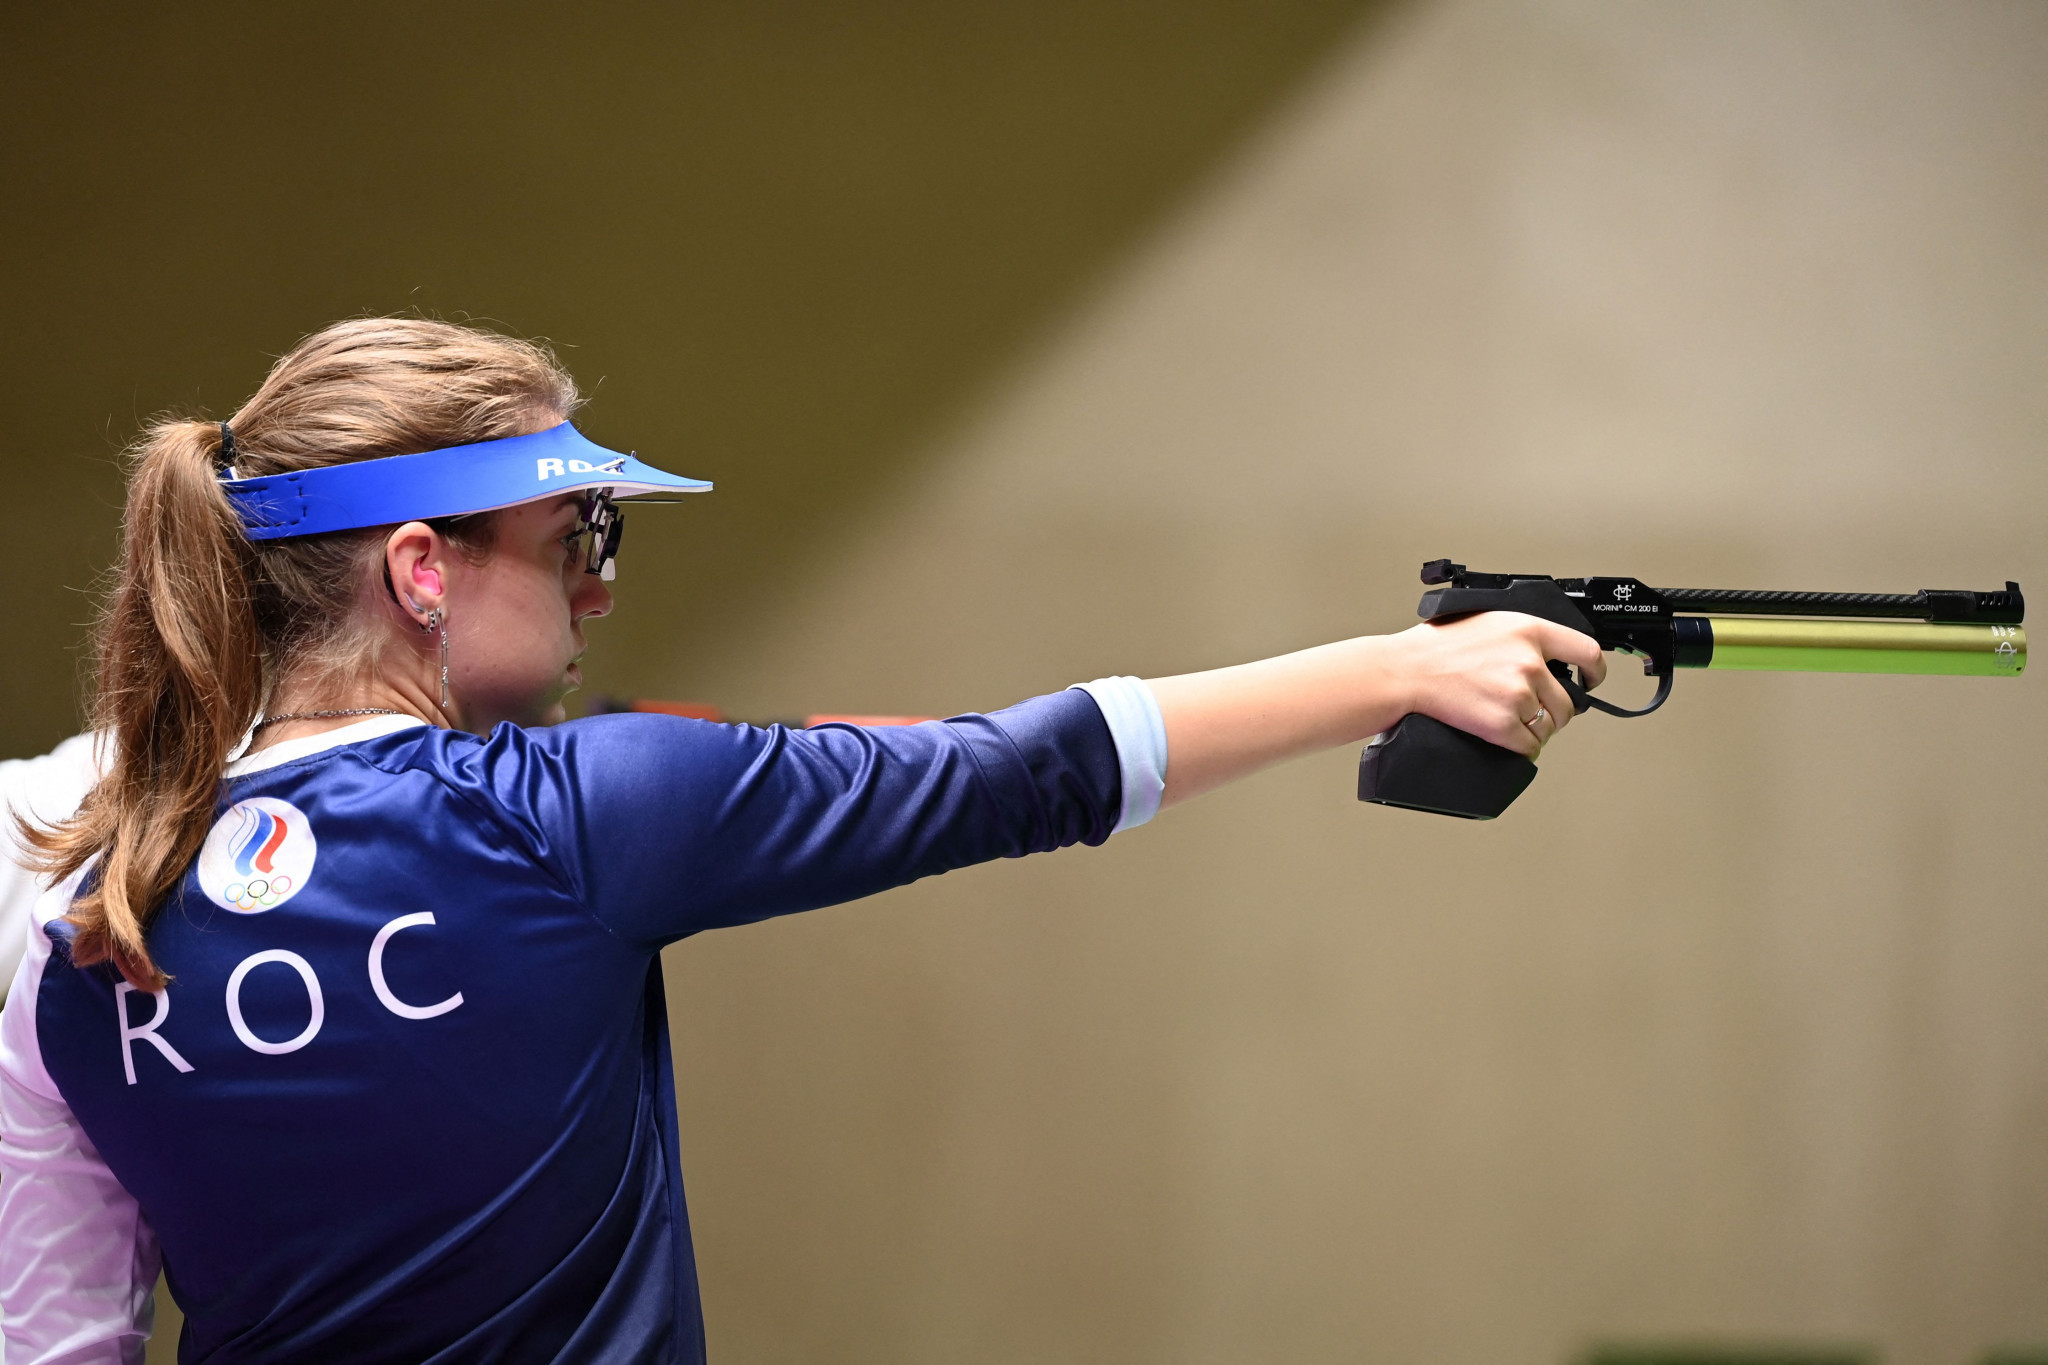 Vitalina Batsarashkina came third in qualifying before winning the gold medal in the 10m women's pistol at Tokyo 2020 ©Getty Images